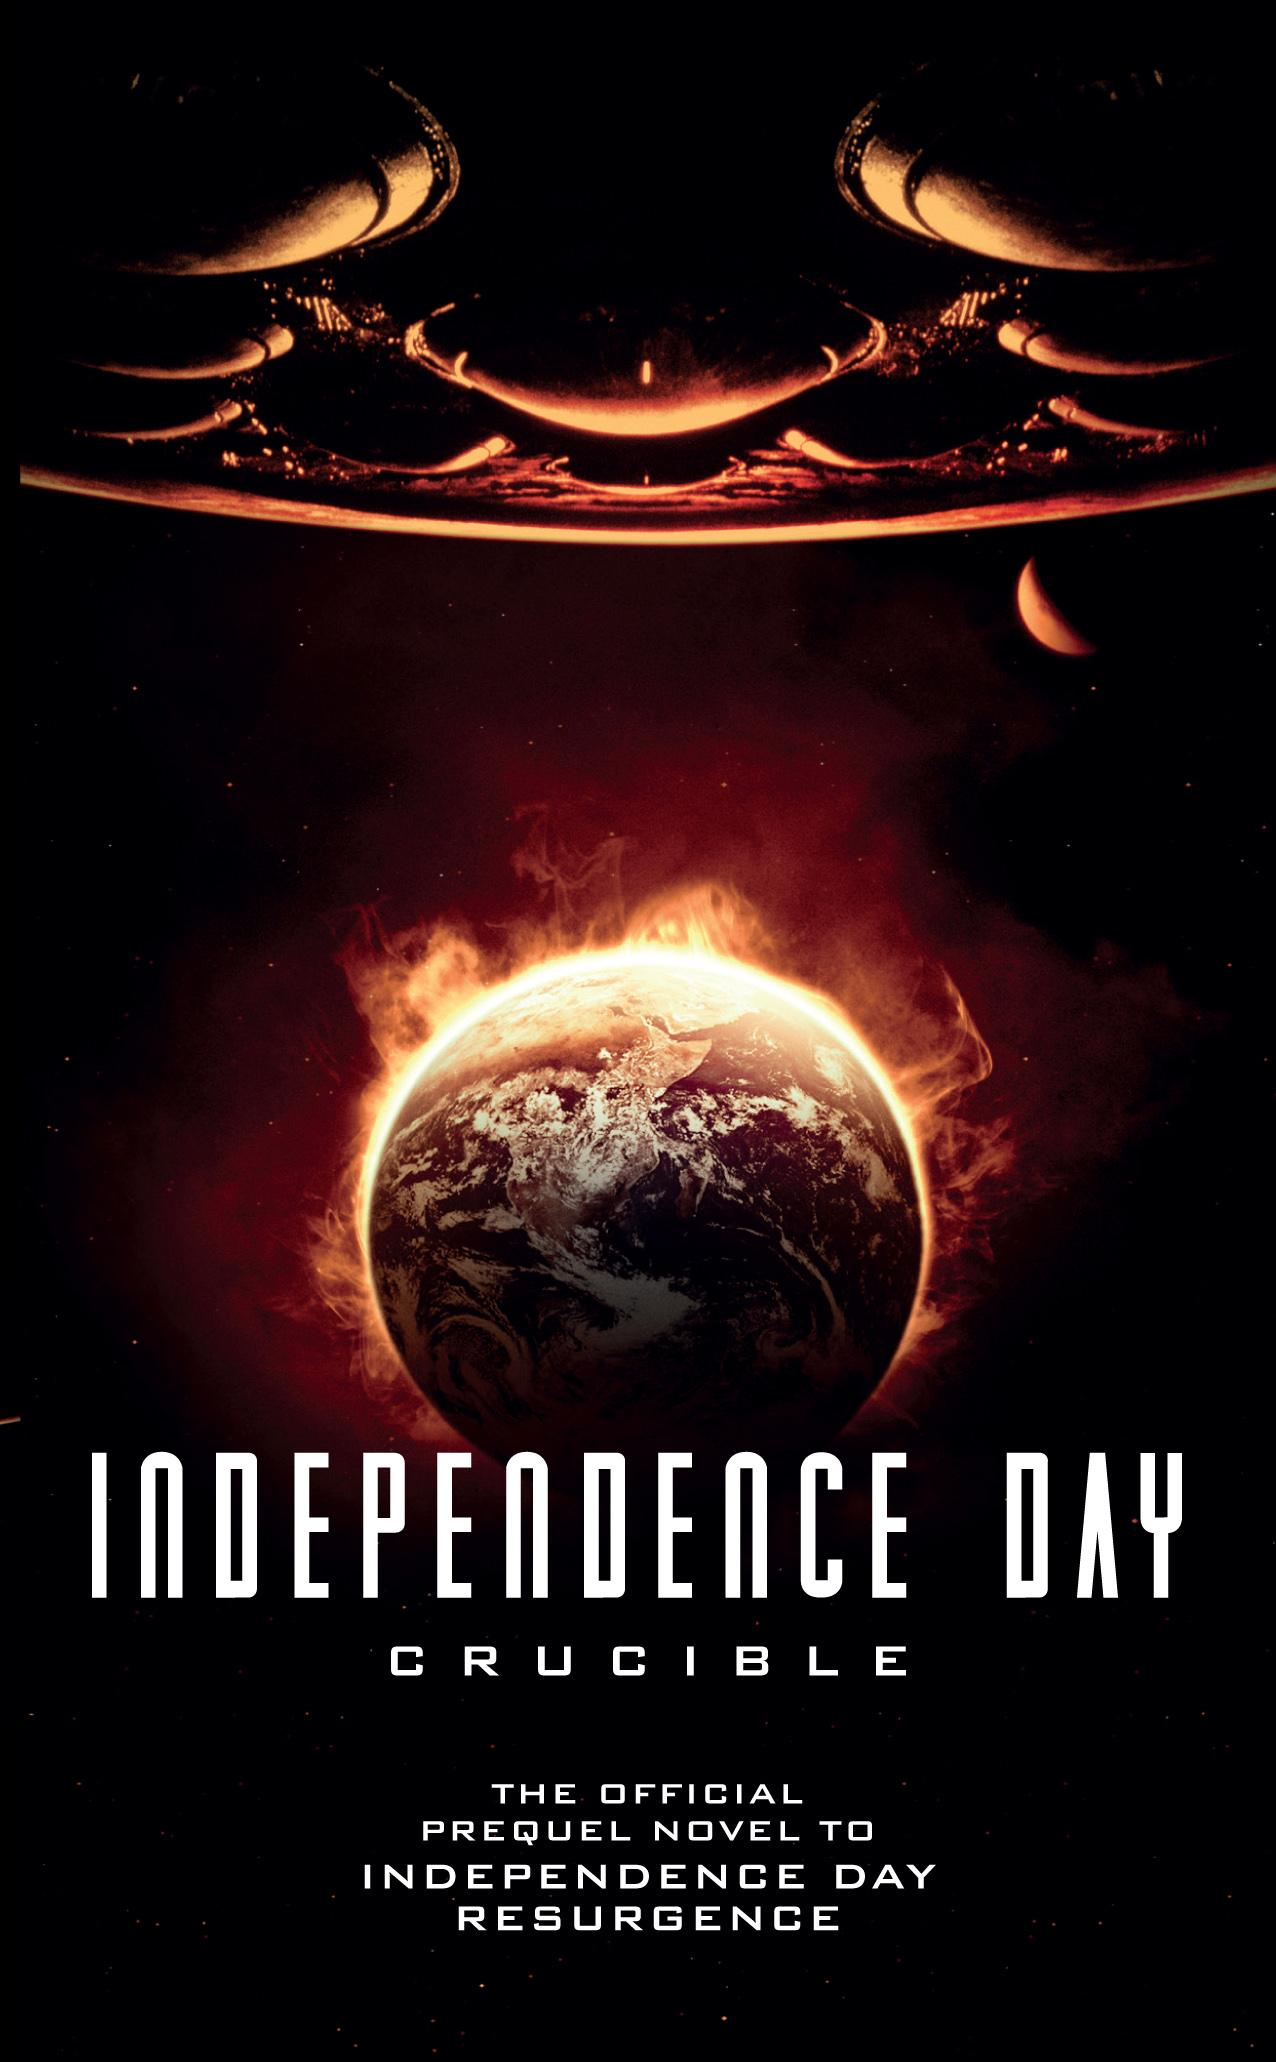 Independence Day: Crucible violet ugrat ways to heaven colonization of mars i